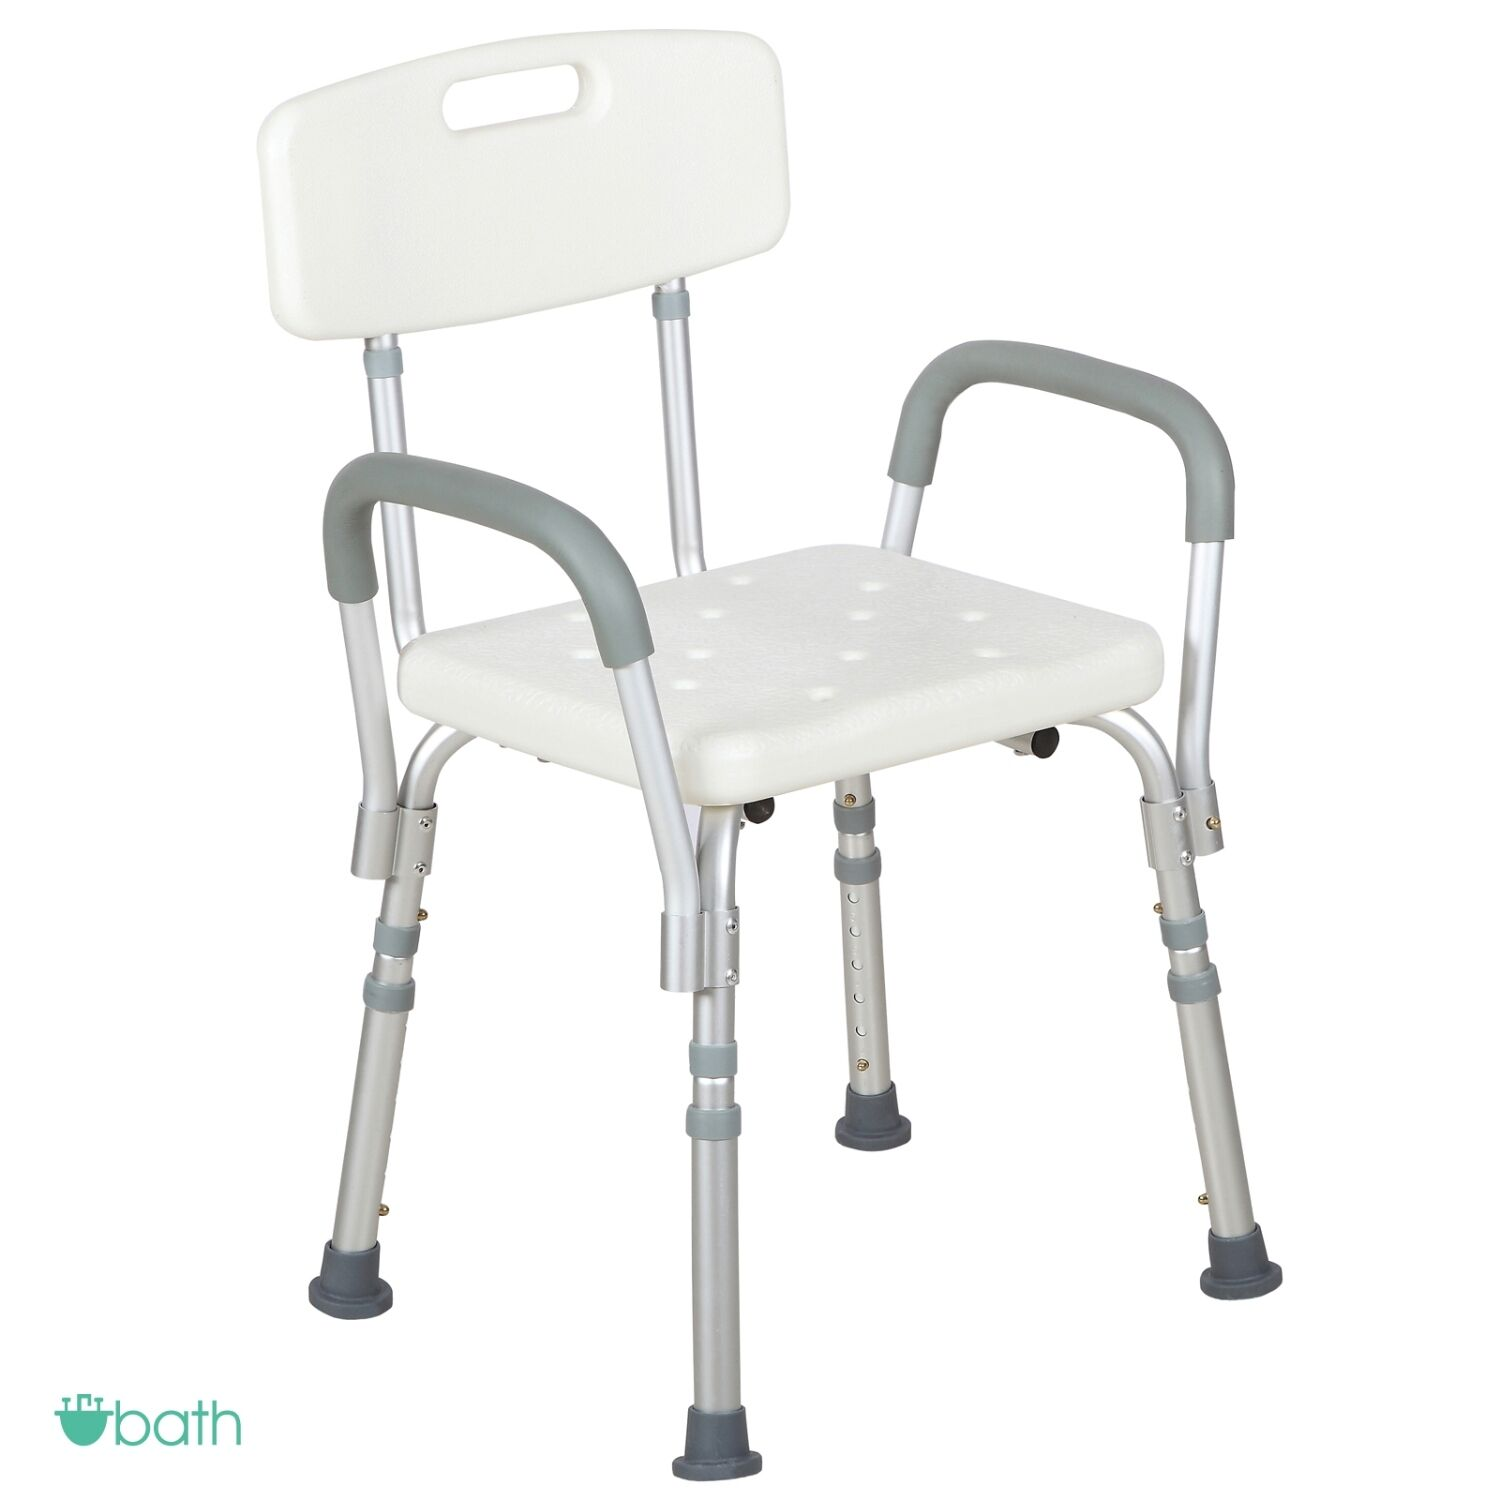 Astonishing Details About Medical Shower Bath Chair Adjustable Bench Stool Seat With Detachable Back Arms Caraccident5 Cool Chair Designs And Ideas Caraccident5Info